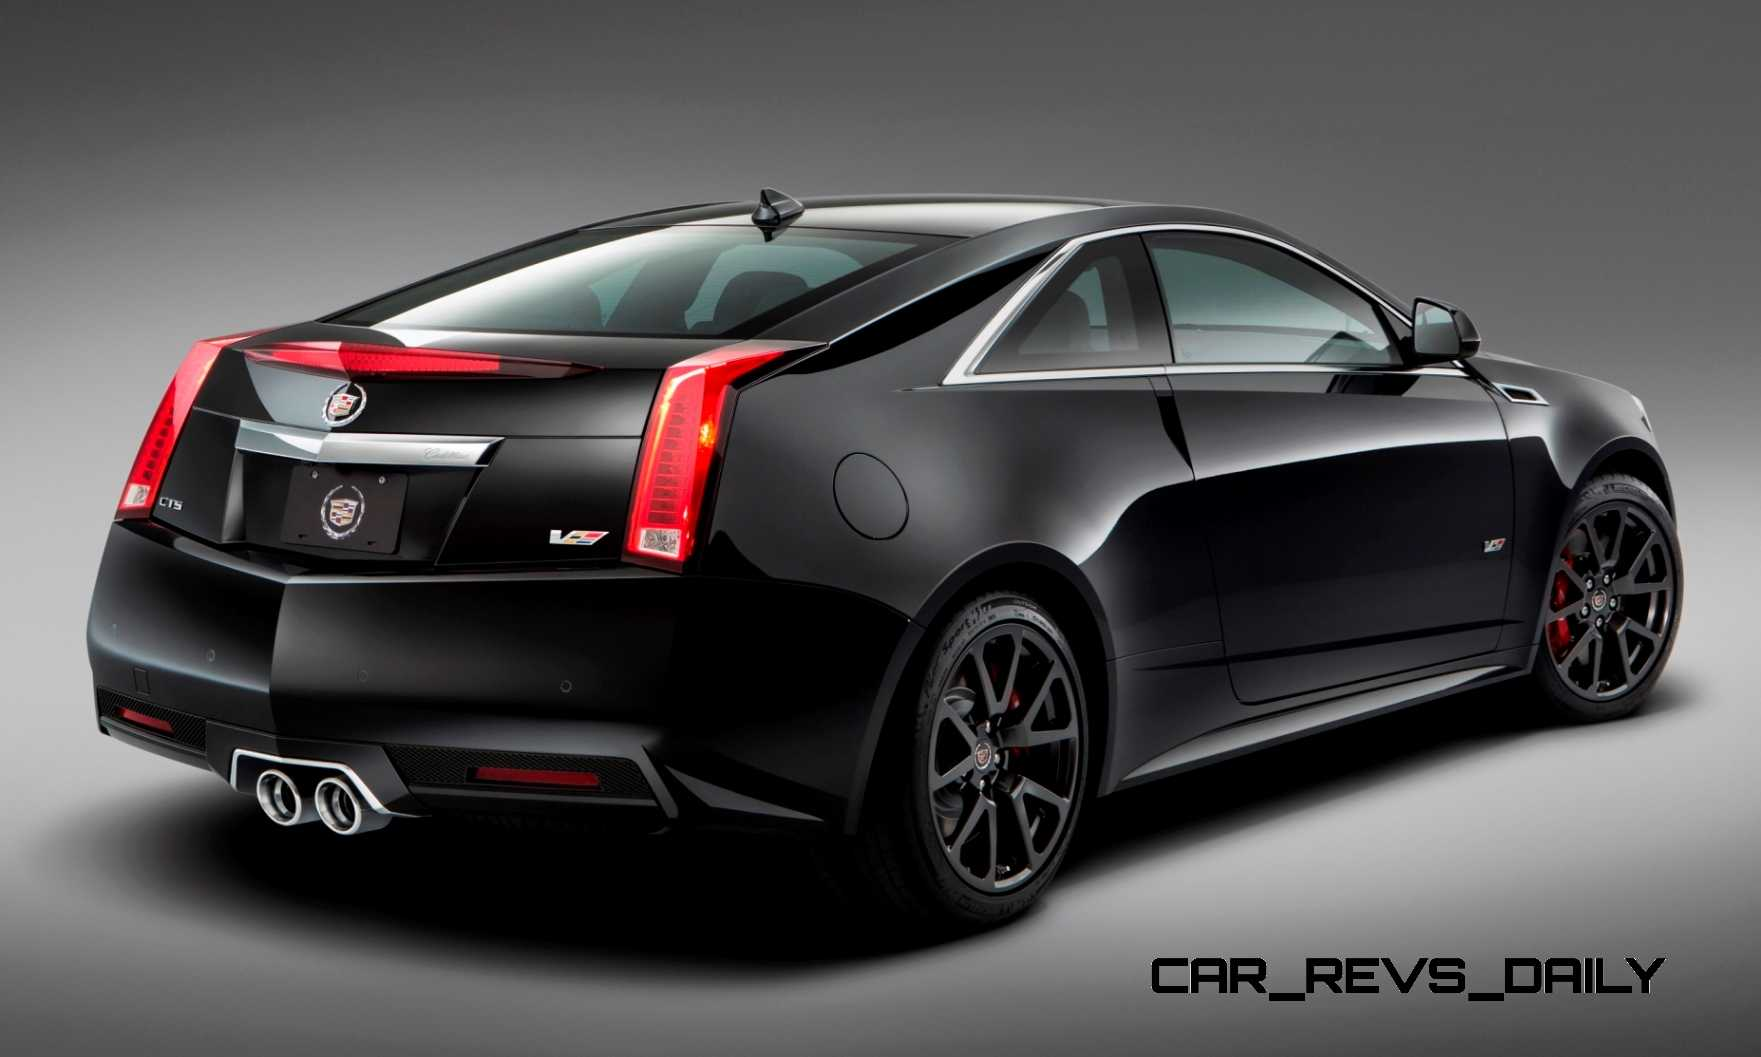 2014 Cadillac Cts For Sale >> 2012 Cadillac CTS-V with Satin White Wrap by CAMSHAFT